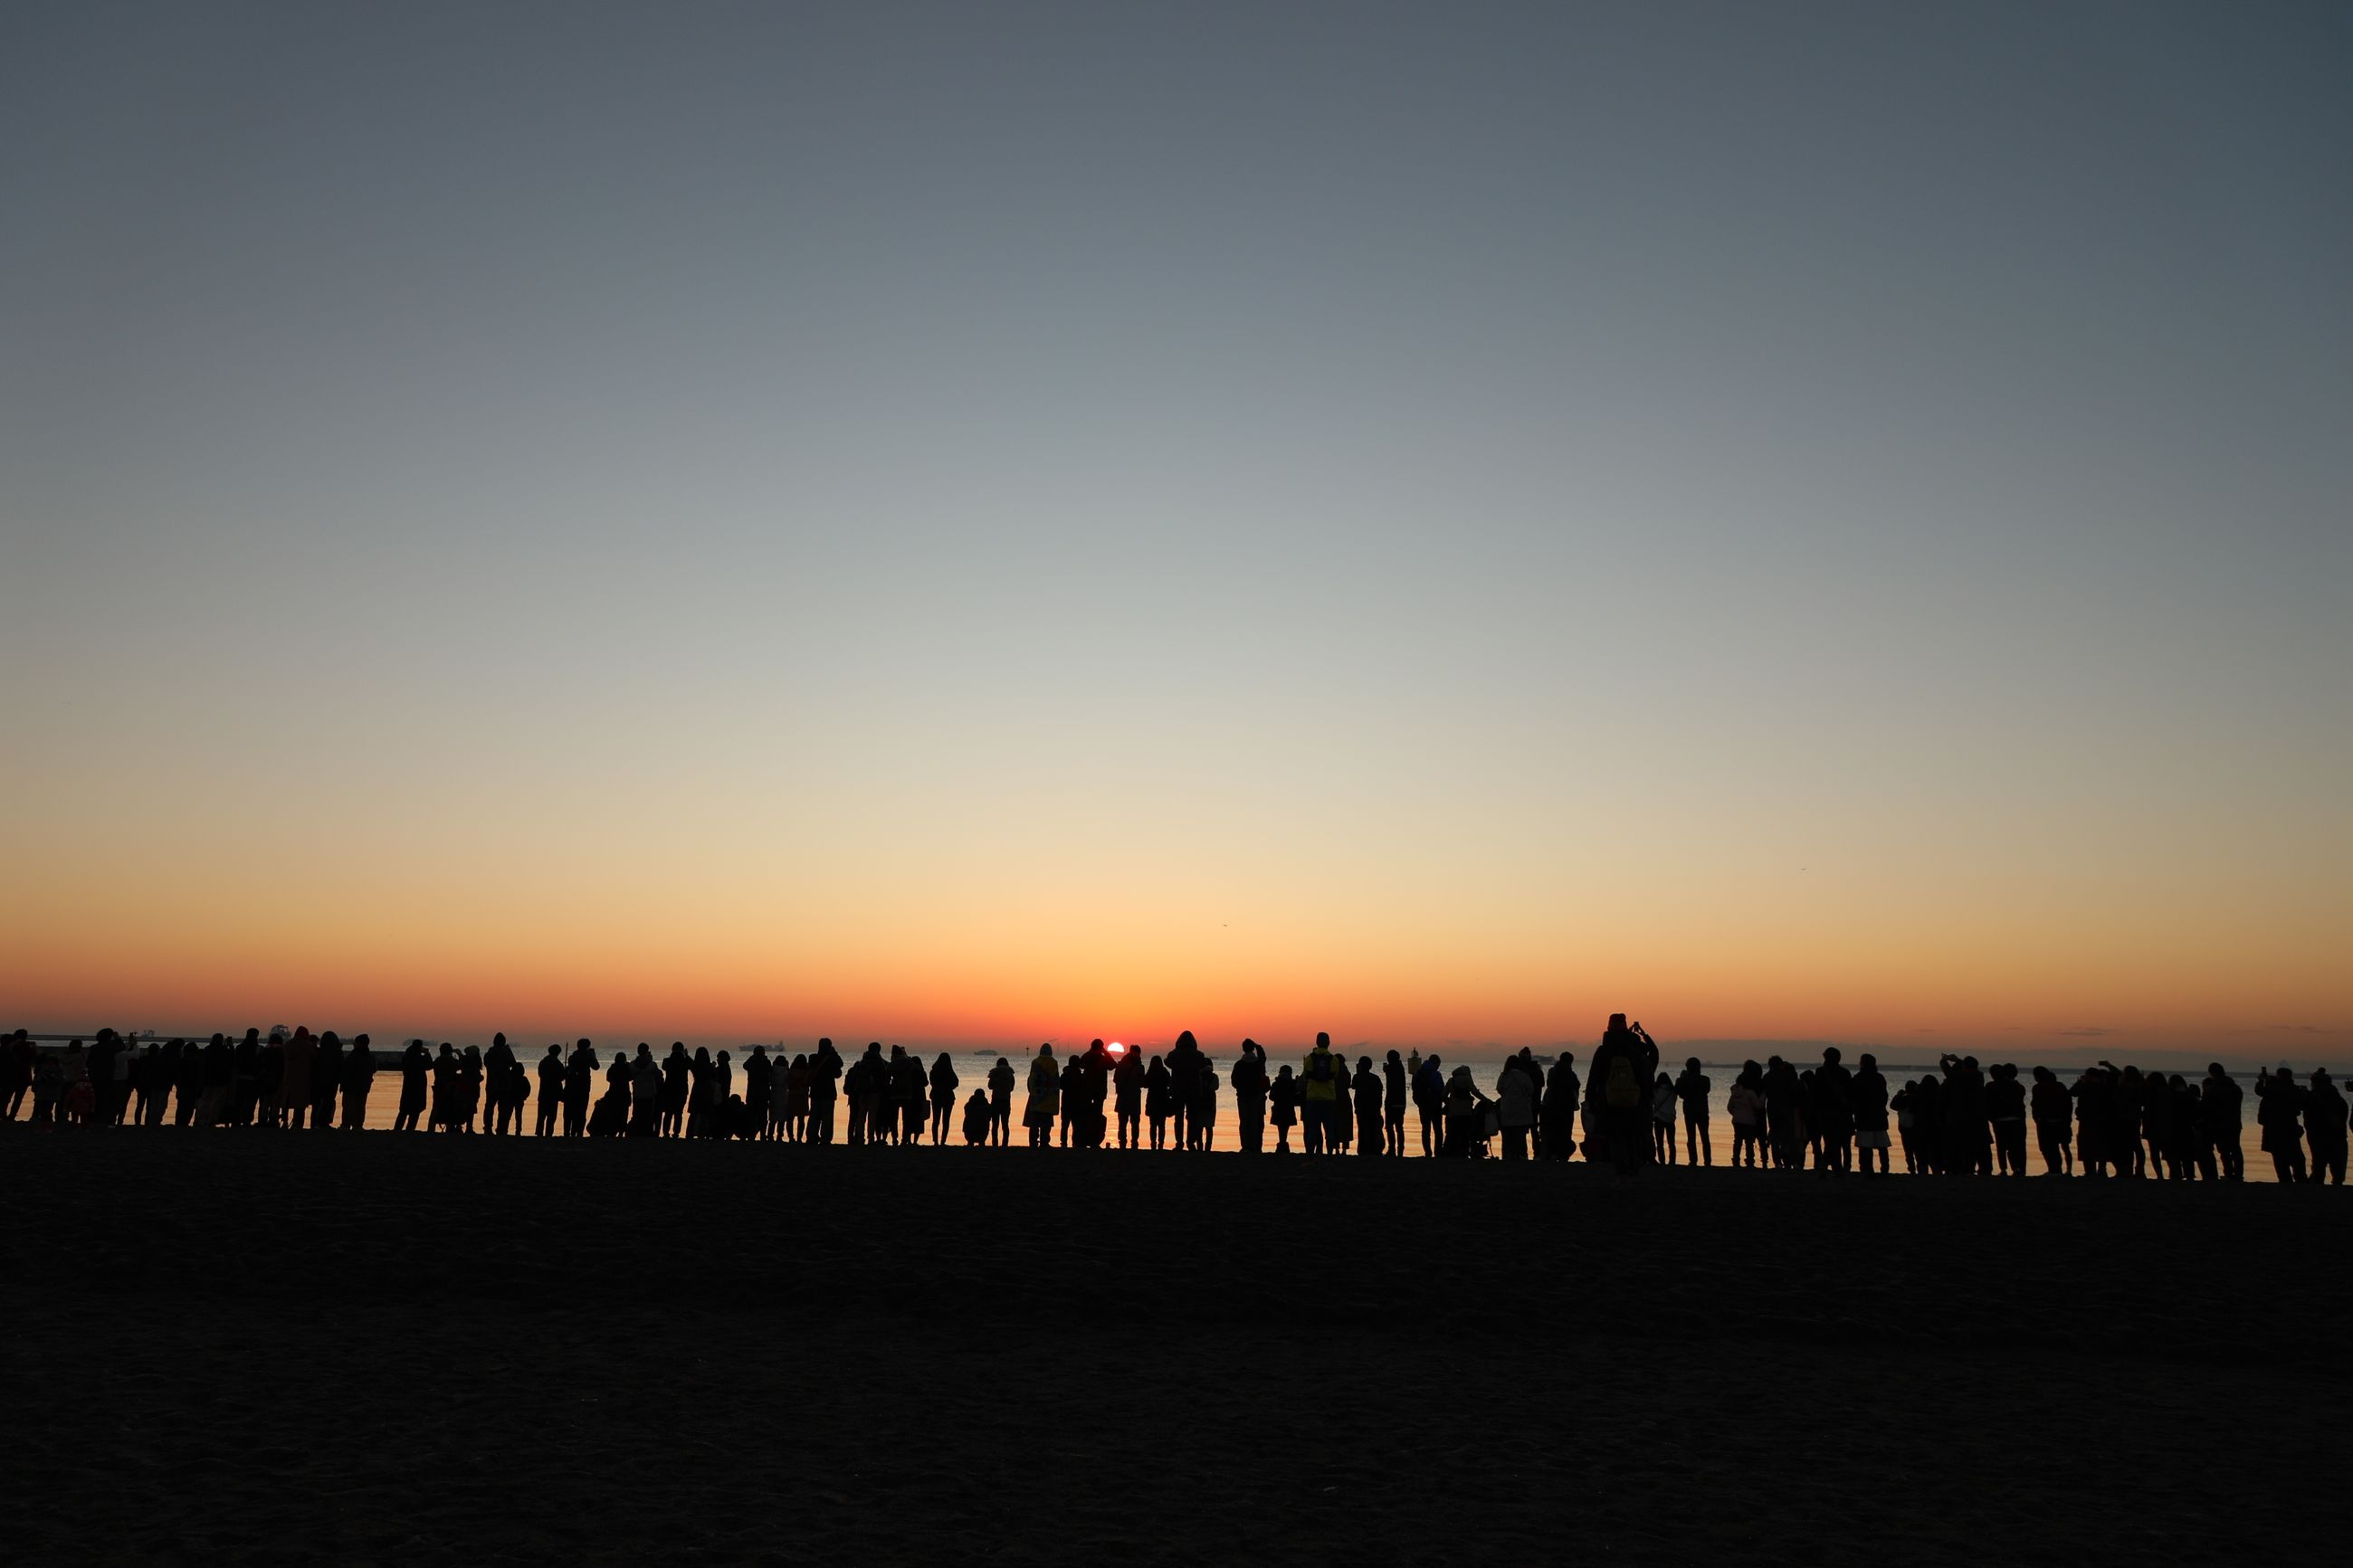 sunset, large group of people, silhouette, large group of animals, beauty in nature, nature, sky, clear sky, scenics, outdoors, bird, animal themes, day, people